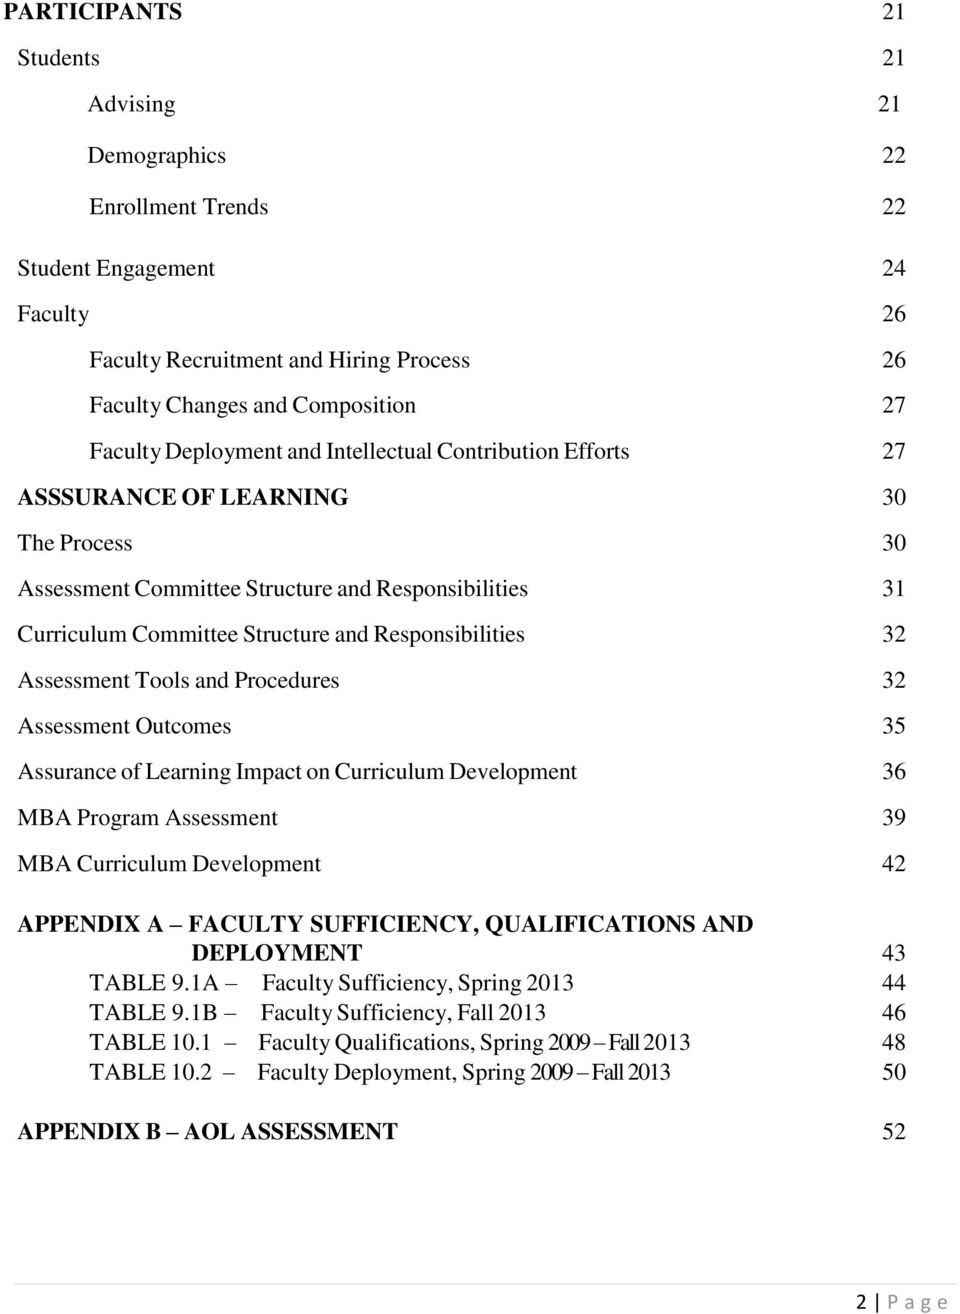 32 Assessment Tools and Procedures 32 Assessment Outcomes 35 Assurance of Learning Impact on Curriculum Development 36 MBA Program Assessment 39 MBA Curriculum Development 42 APPENDIX A FACULTY